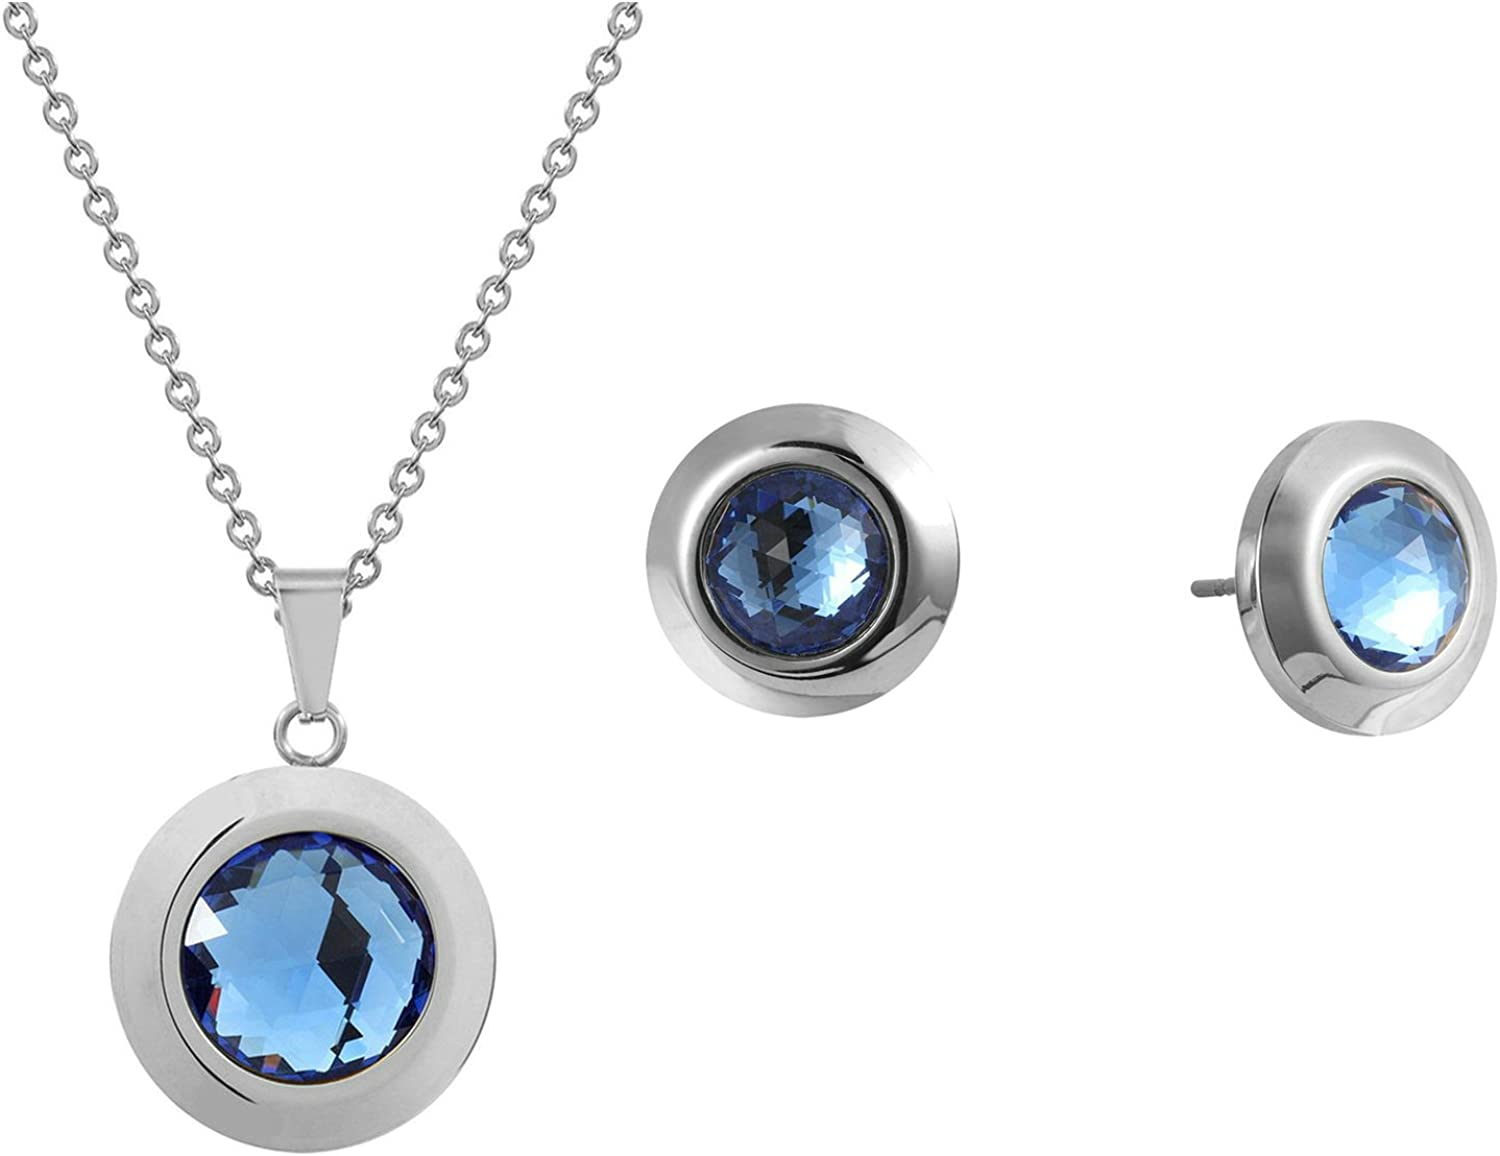 Adisaer White Gold Plated Jewelry Set for Women Necklace and Earring Set Round Blue Cubic Zirconia Silver